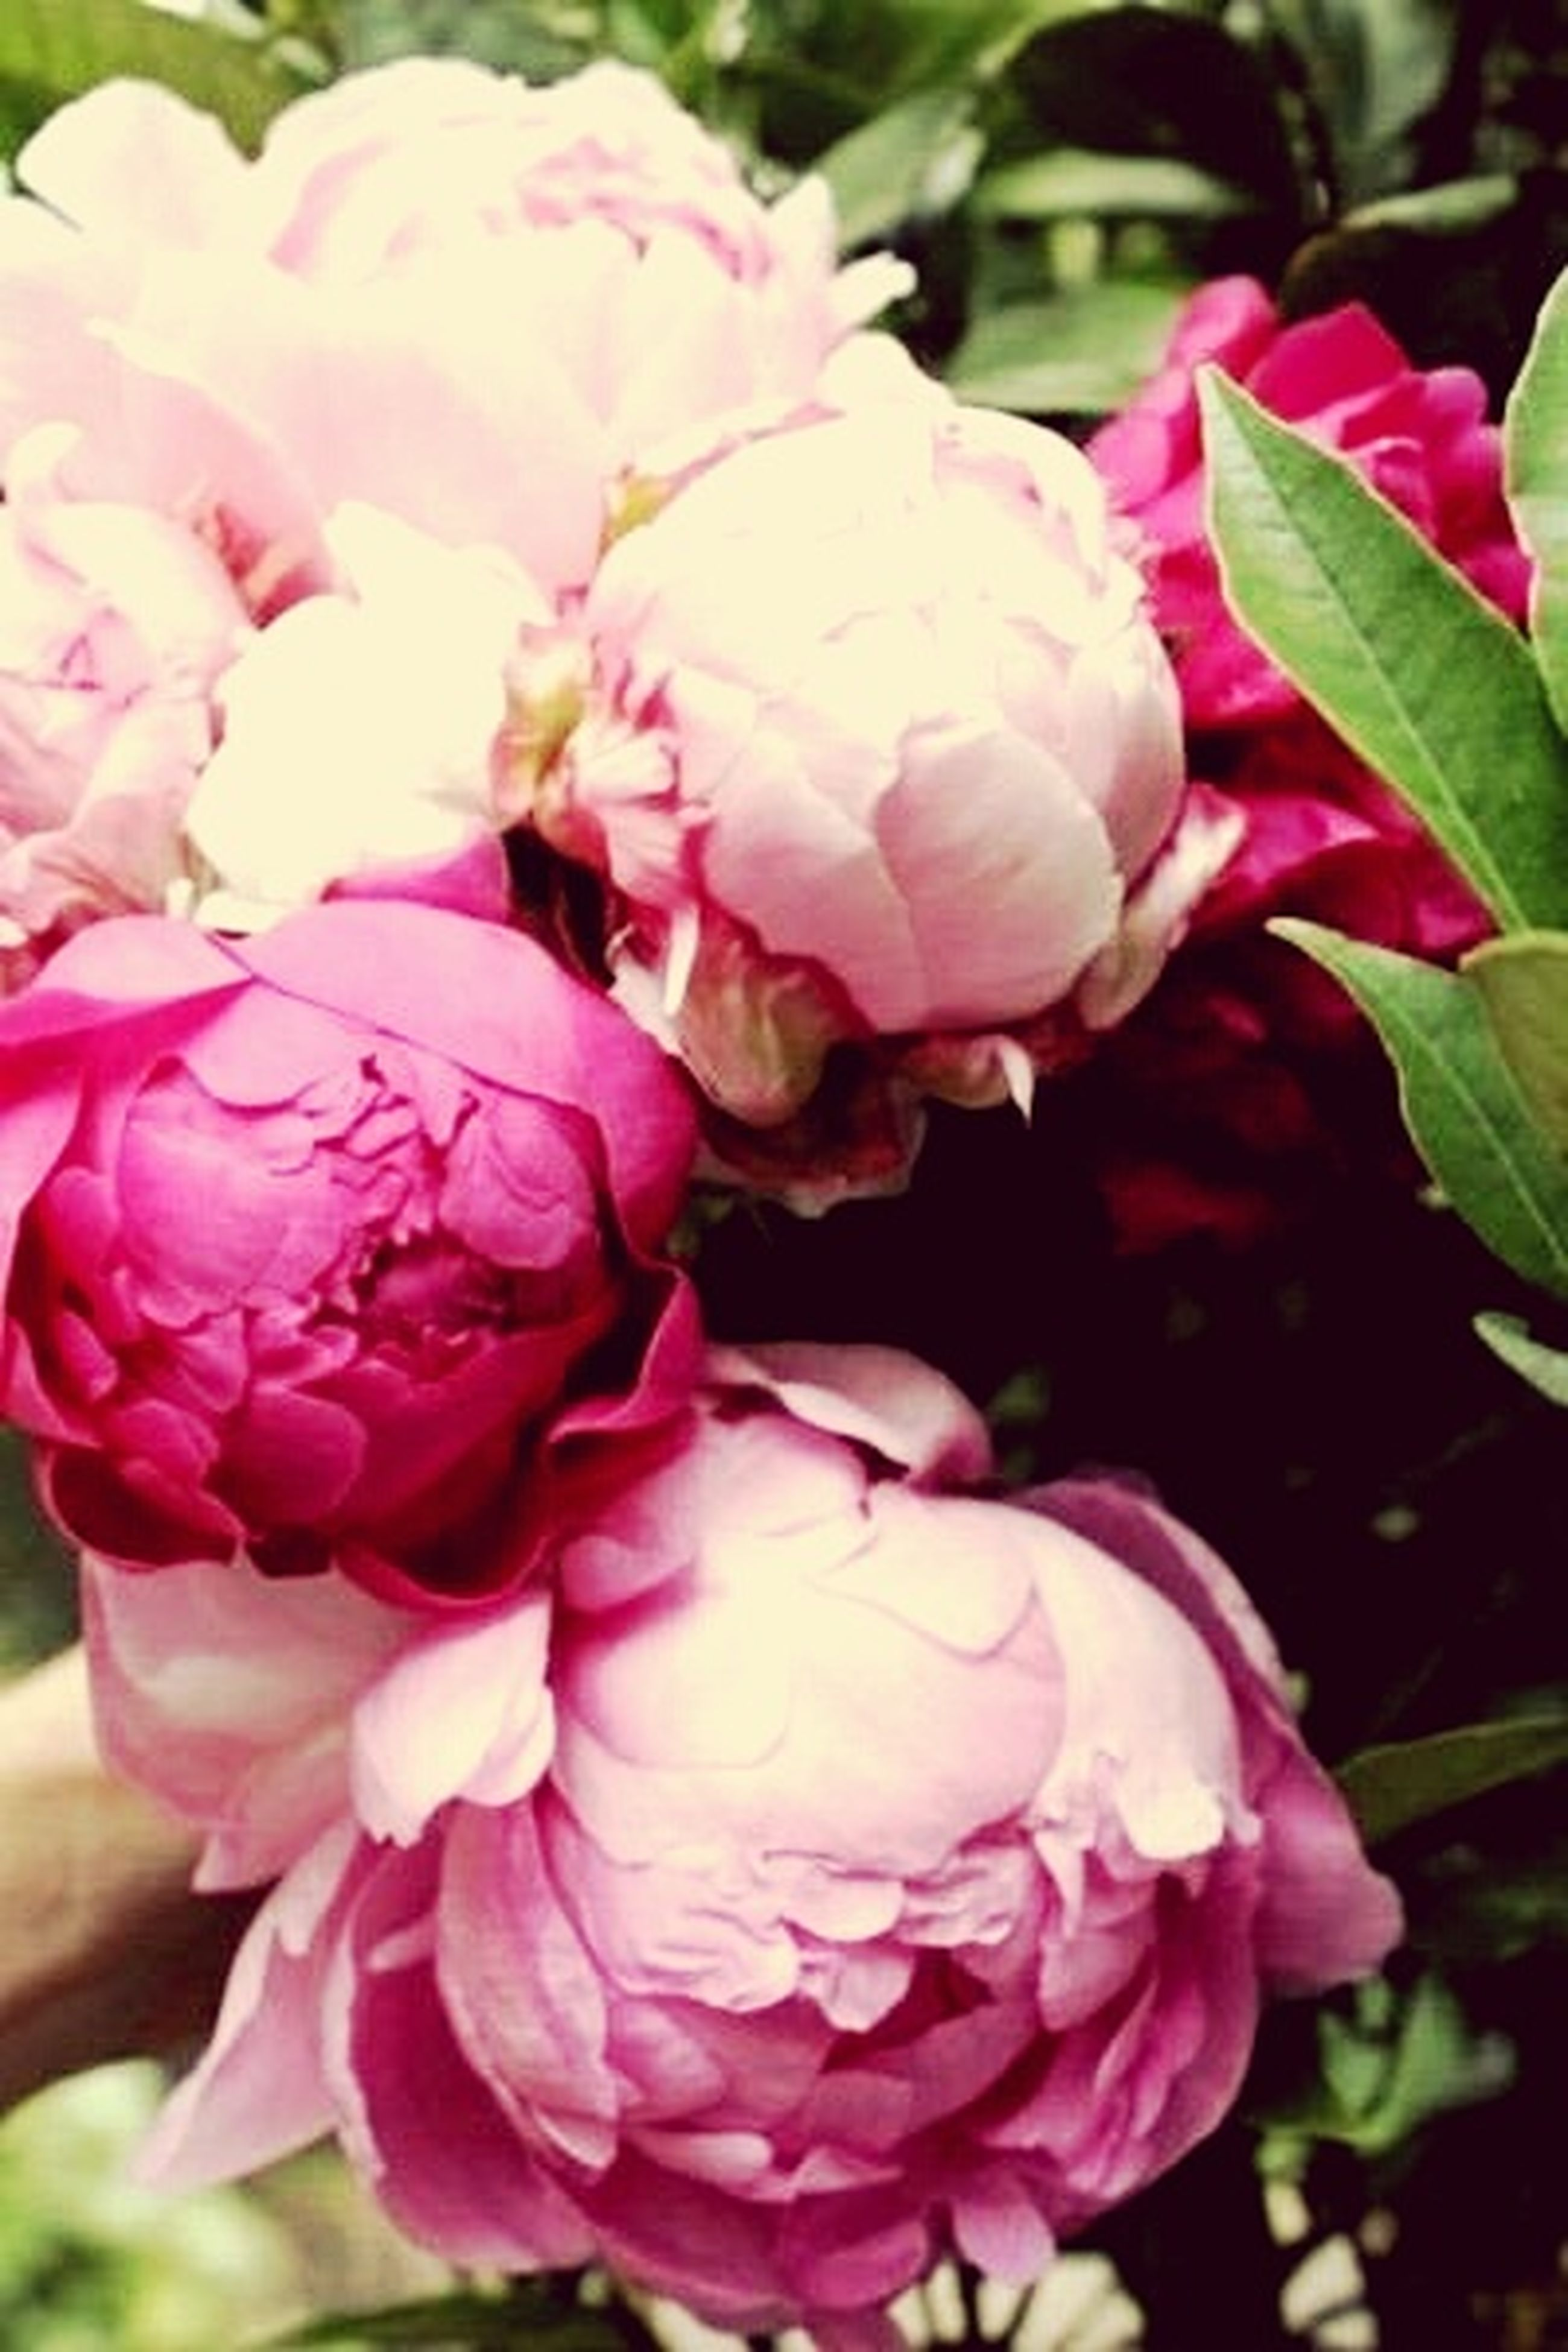 flower, petal, freshness, fragility, flower head, pink color, beauty in nature, close-up, growth, rose - flower, nature, focus on foreground, blooming, pink, plant, in bloom, blossom, park - man made space, botany, rose